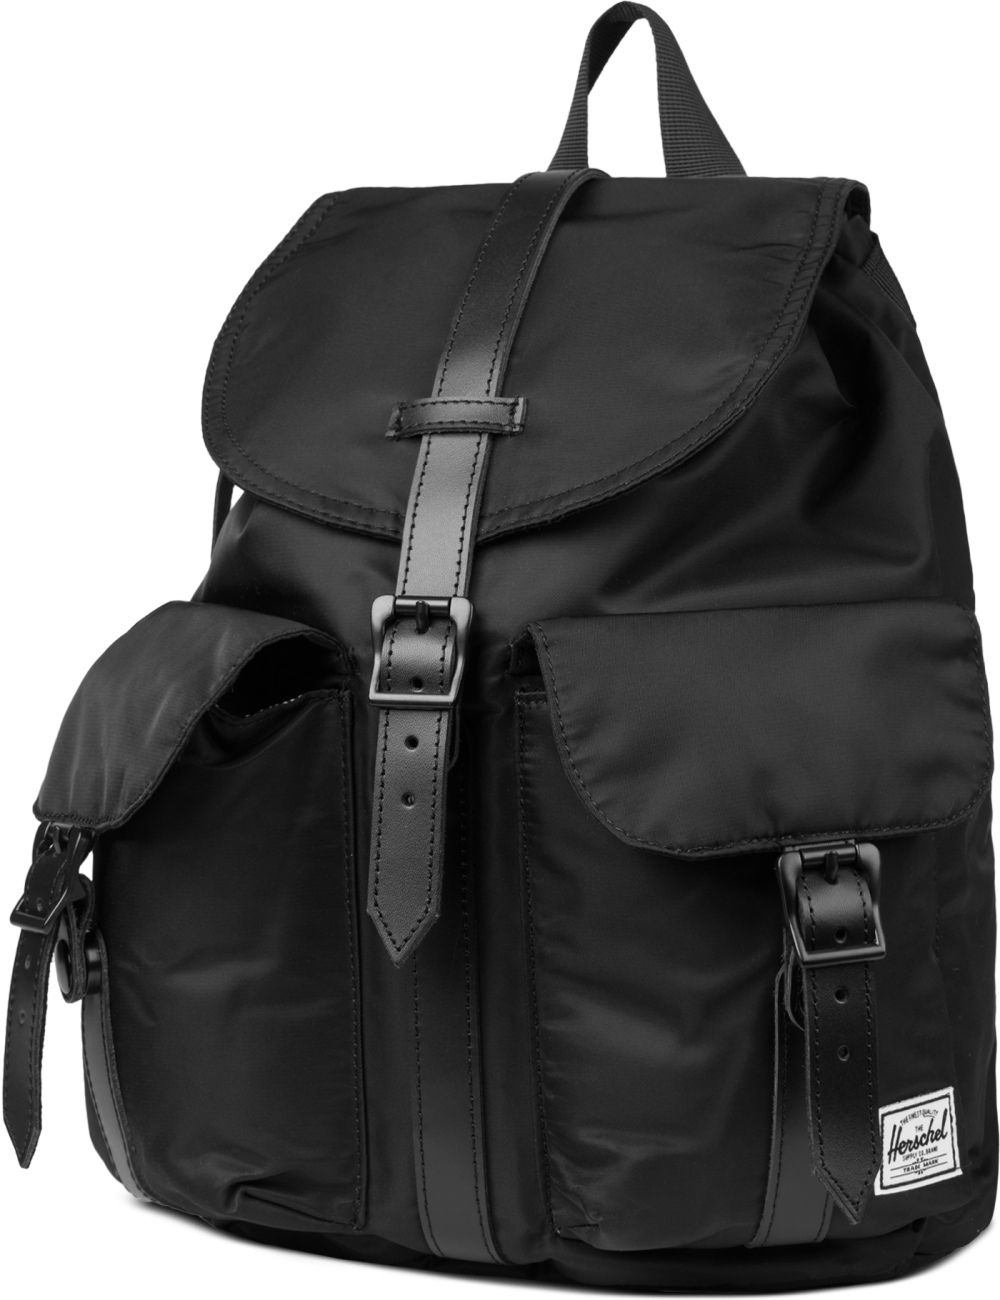 3af311f67e3 Herschel Supply Co. Black Dawson Backpack